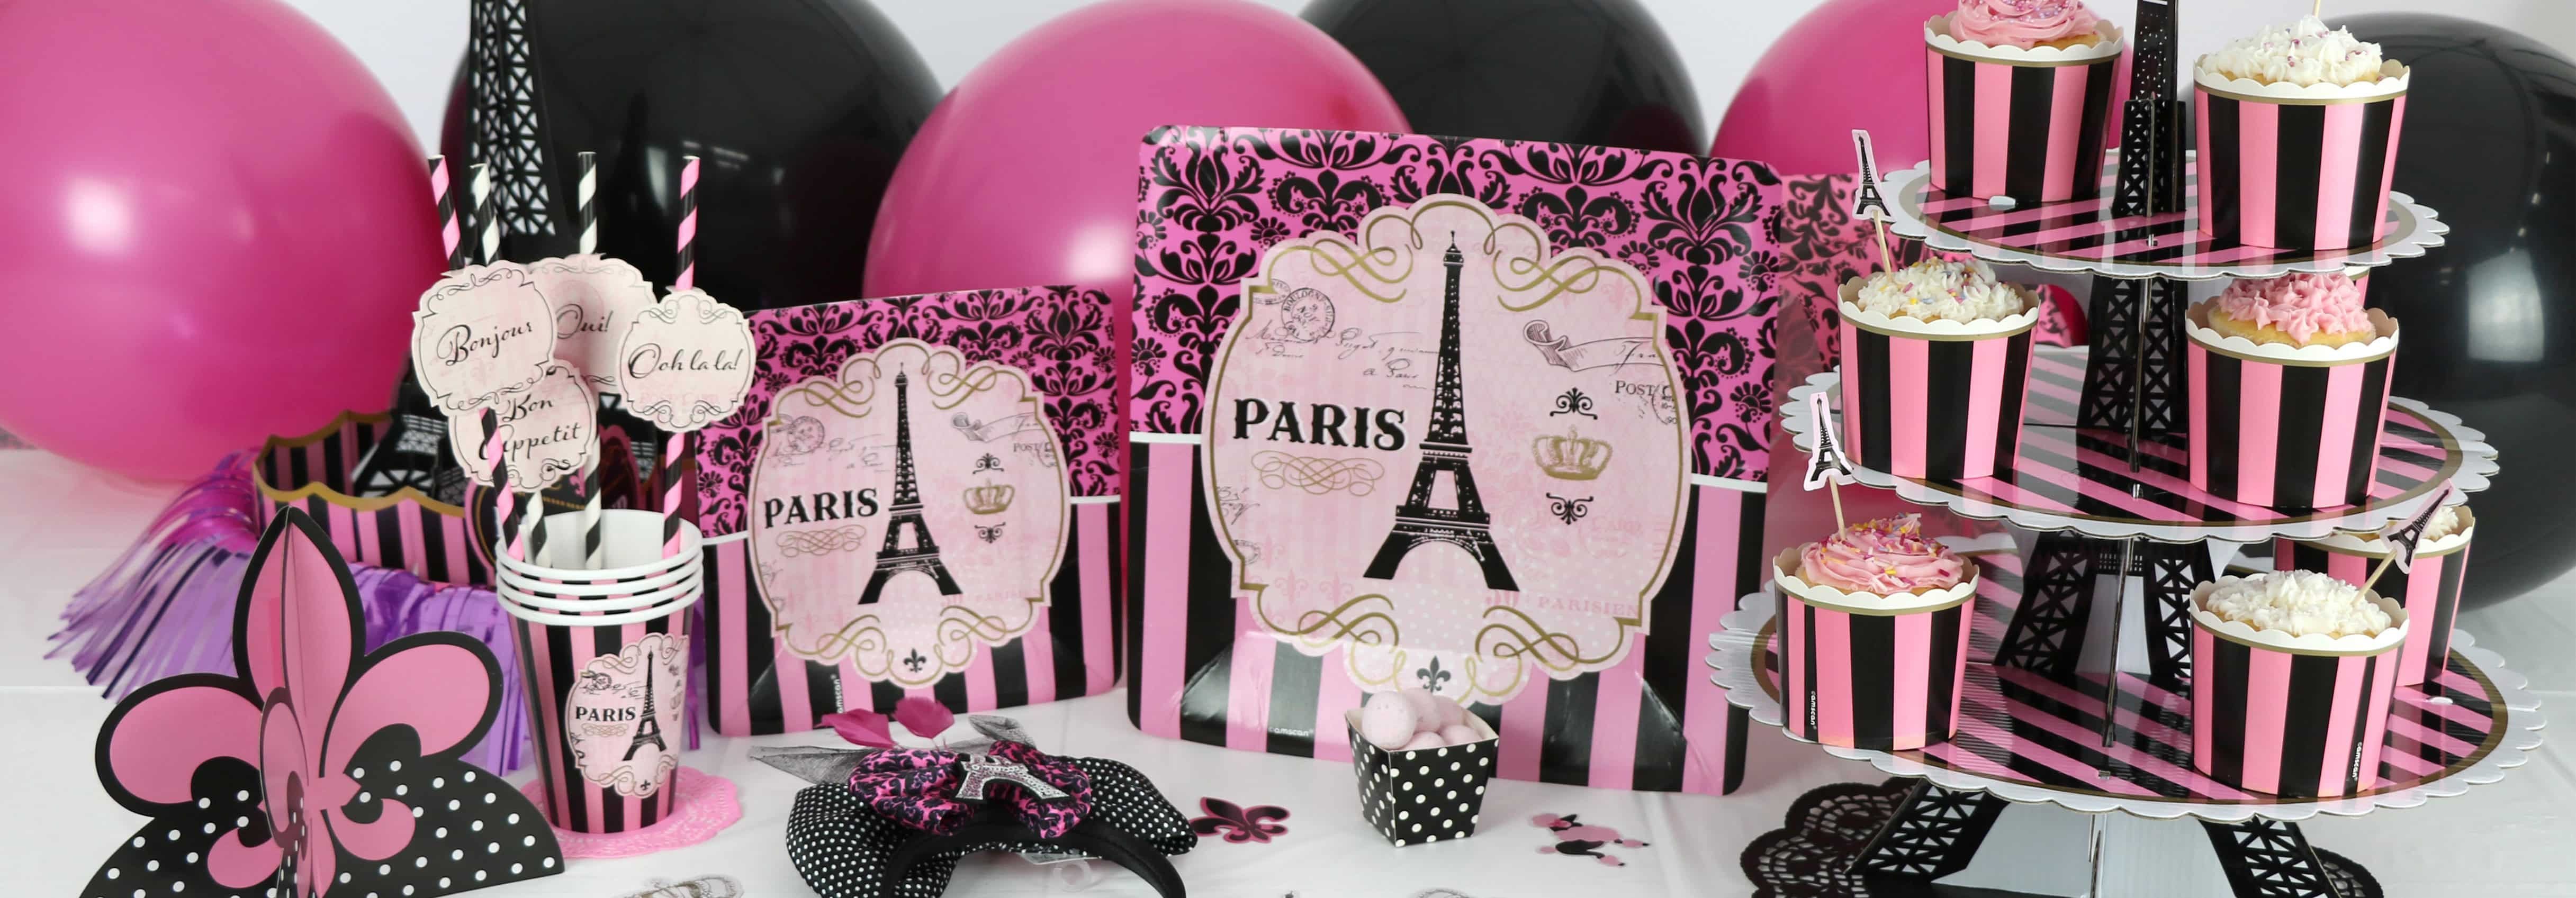 day in paris party supplies decorations novelties fun party supplies. Black Bedroom Furniture Sets. Home Design Ideas